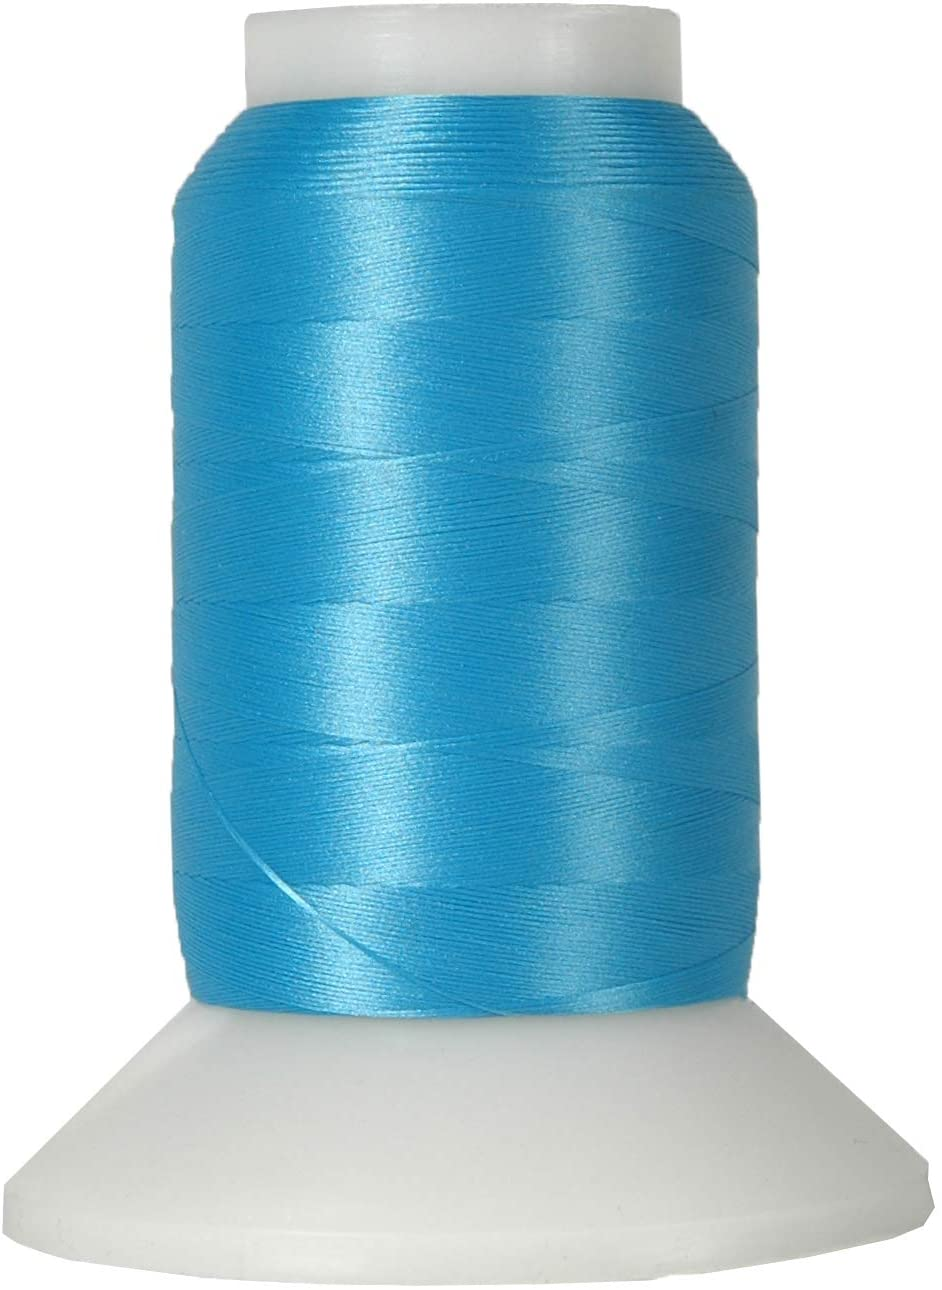 Threadart Wooly Nylon Thread - 1000m Spools - Color 9143 - TURQUOISE - Serger Sewing Stretchy Thread - 50 Colors Available